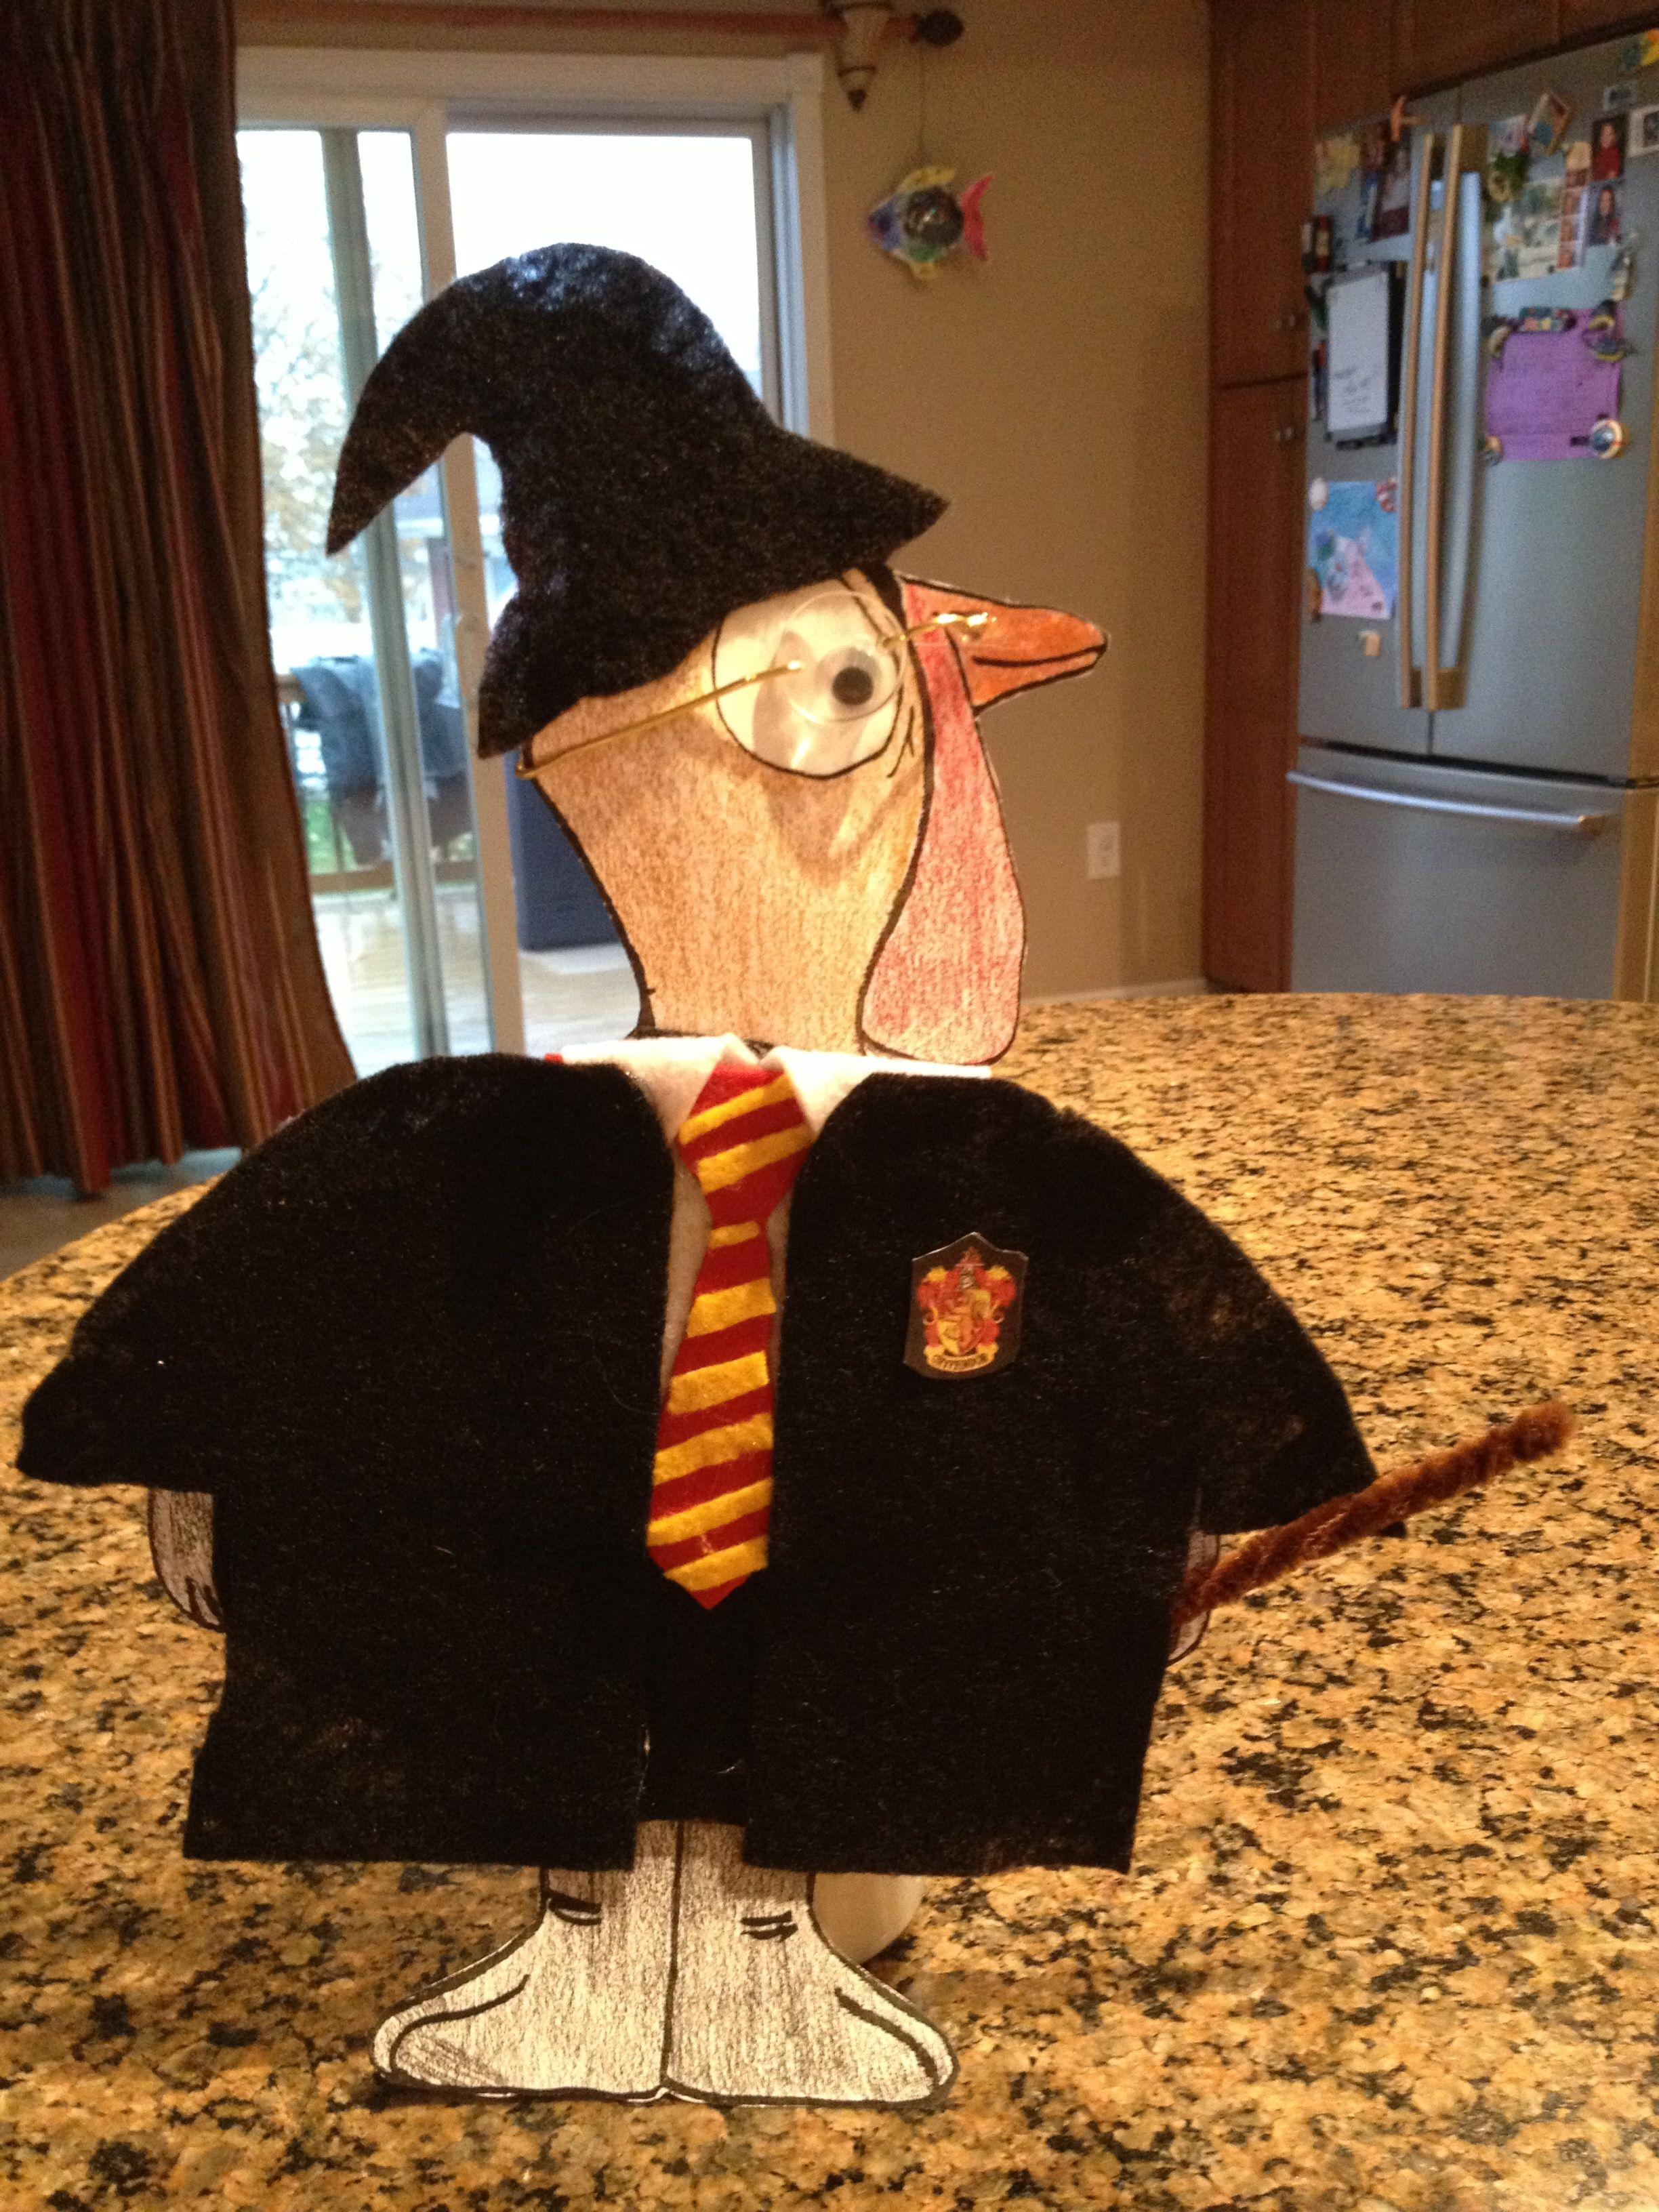 Rachel Had To Disguise Tom Turkey Before Thanksgiving Looks Like He Will Be Hiding Out At Hogwarts See Turkey Disguise Project Turkey Disguise Turkey Project